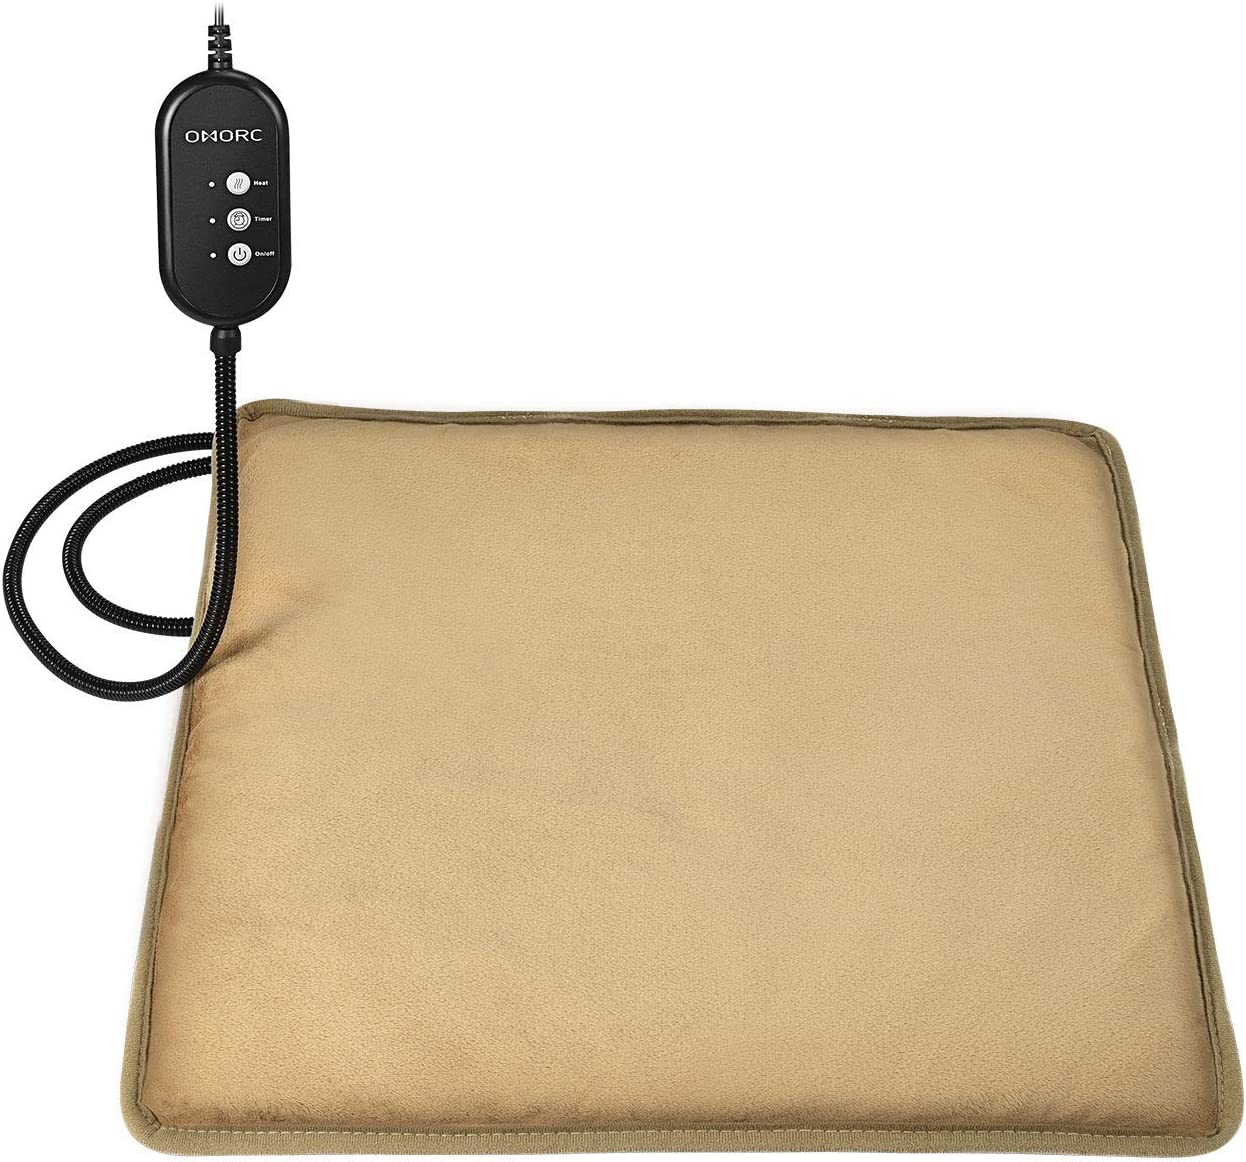 "OMORC Pet Heating Pad, 12V Safe Dog Cat Heating Pad with 3 Level Timer & Temperature Settings & 2 Replaceable Cover, Auto Power-Off Thermostats and Anti-Bite Tube, 17"" x 17"" Heated Mat for Pets"